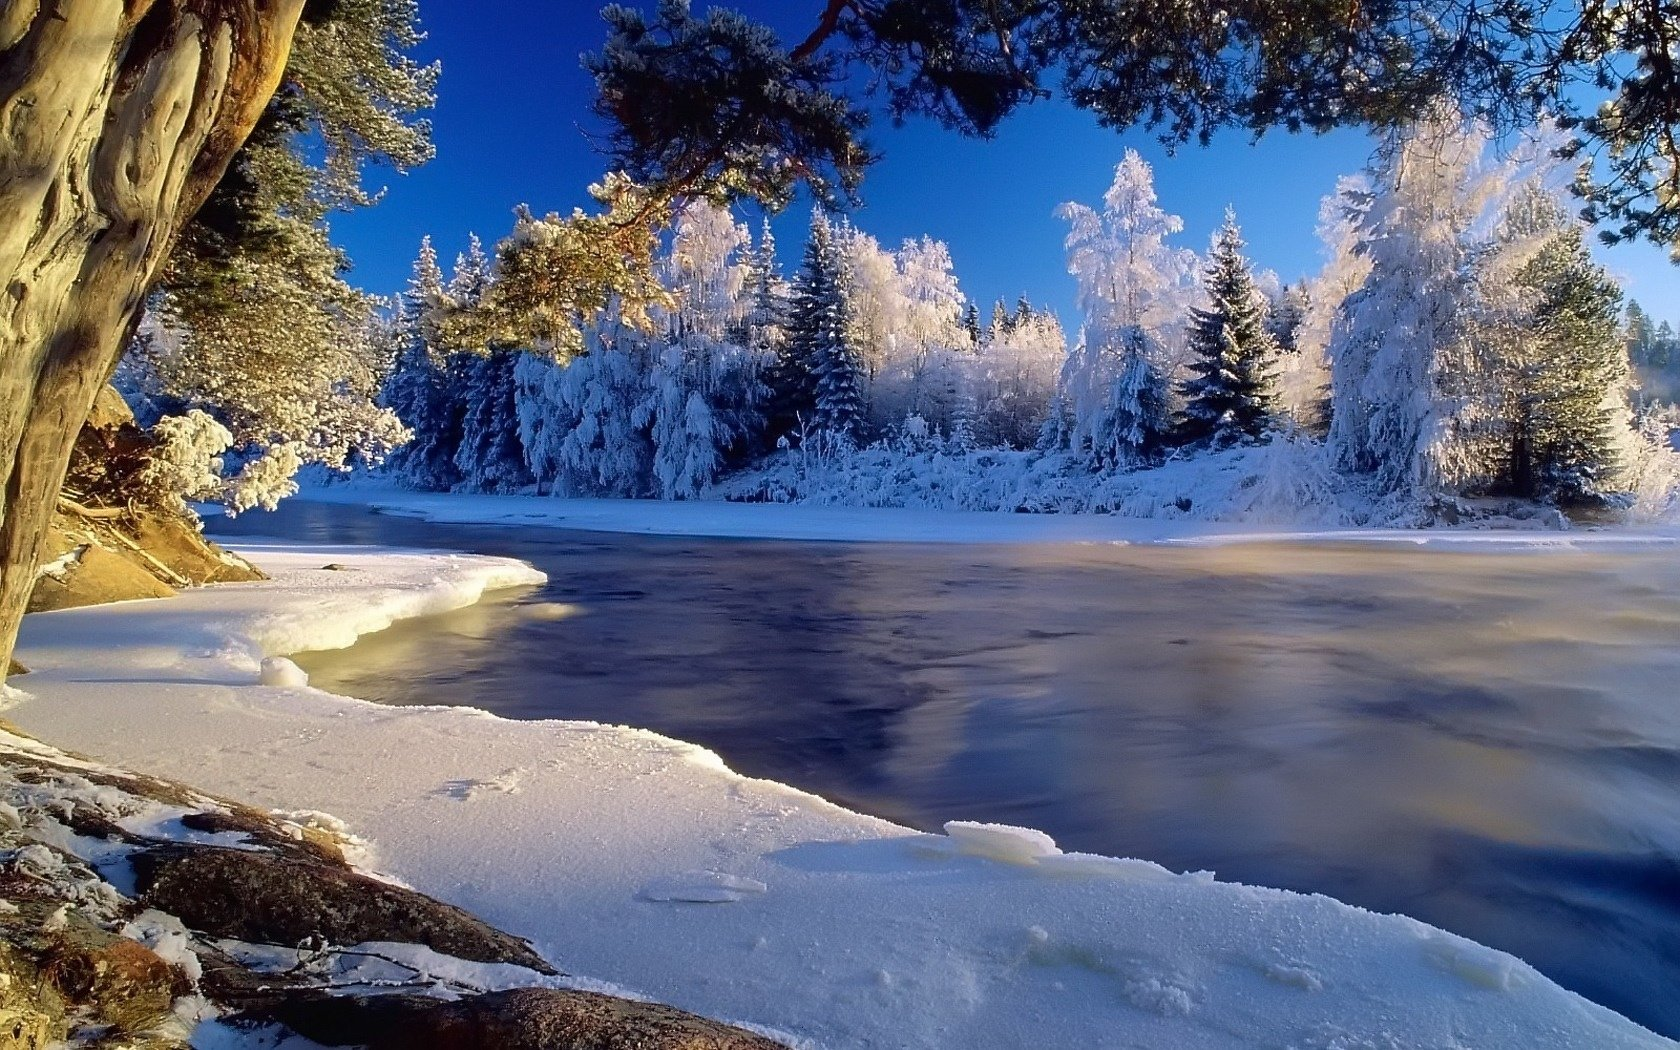 Winter Wallpapers 1680x1050 Desktop Backgrounds